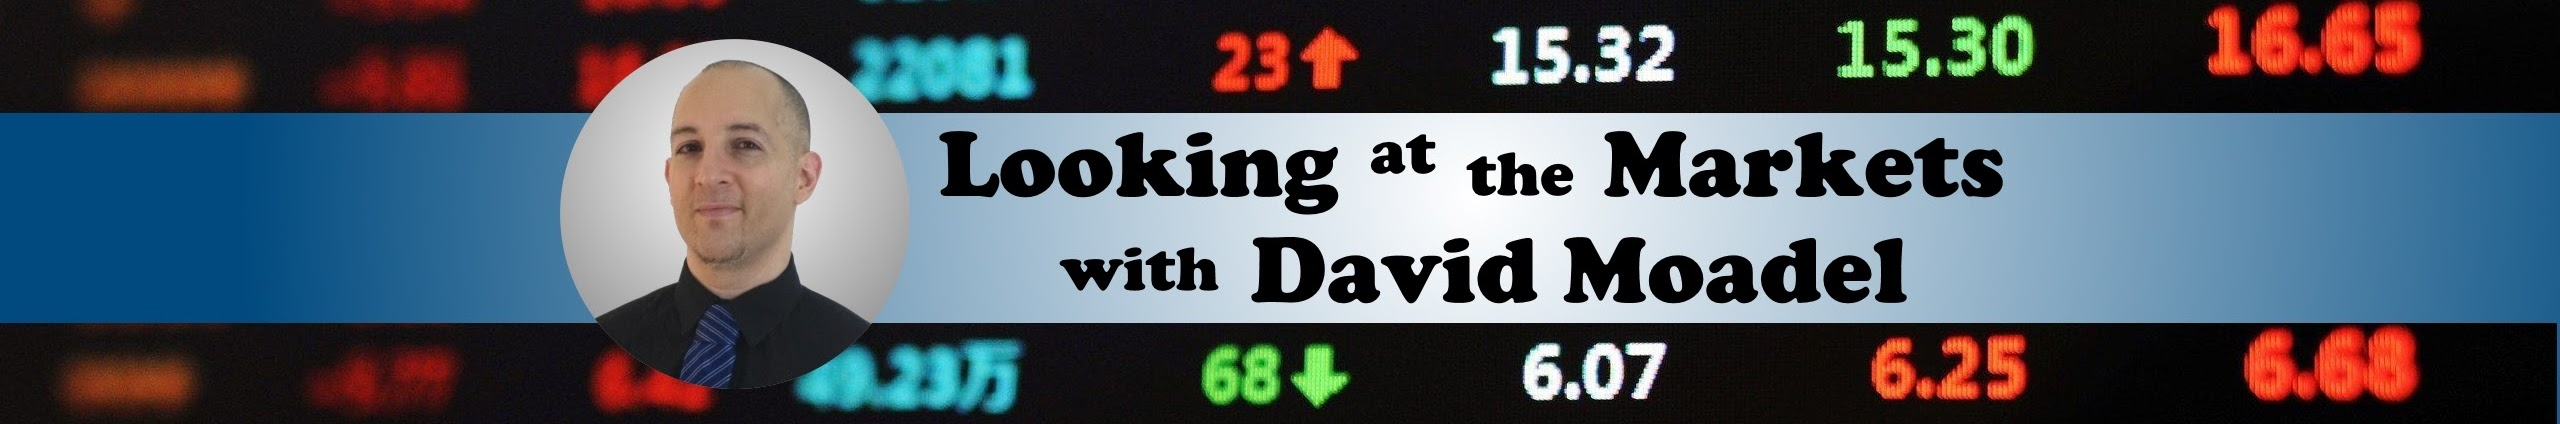 Looking at the Markets with David Moadel